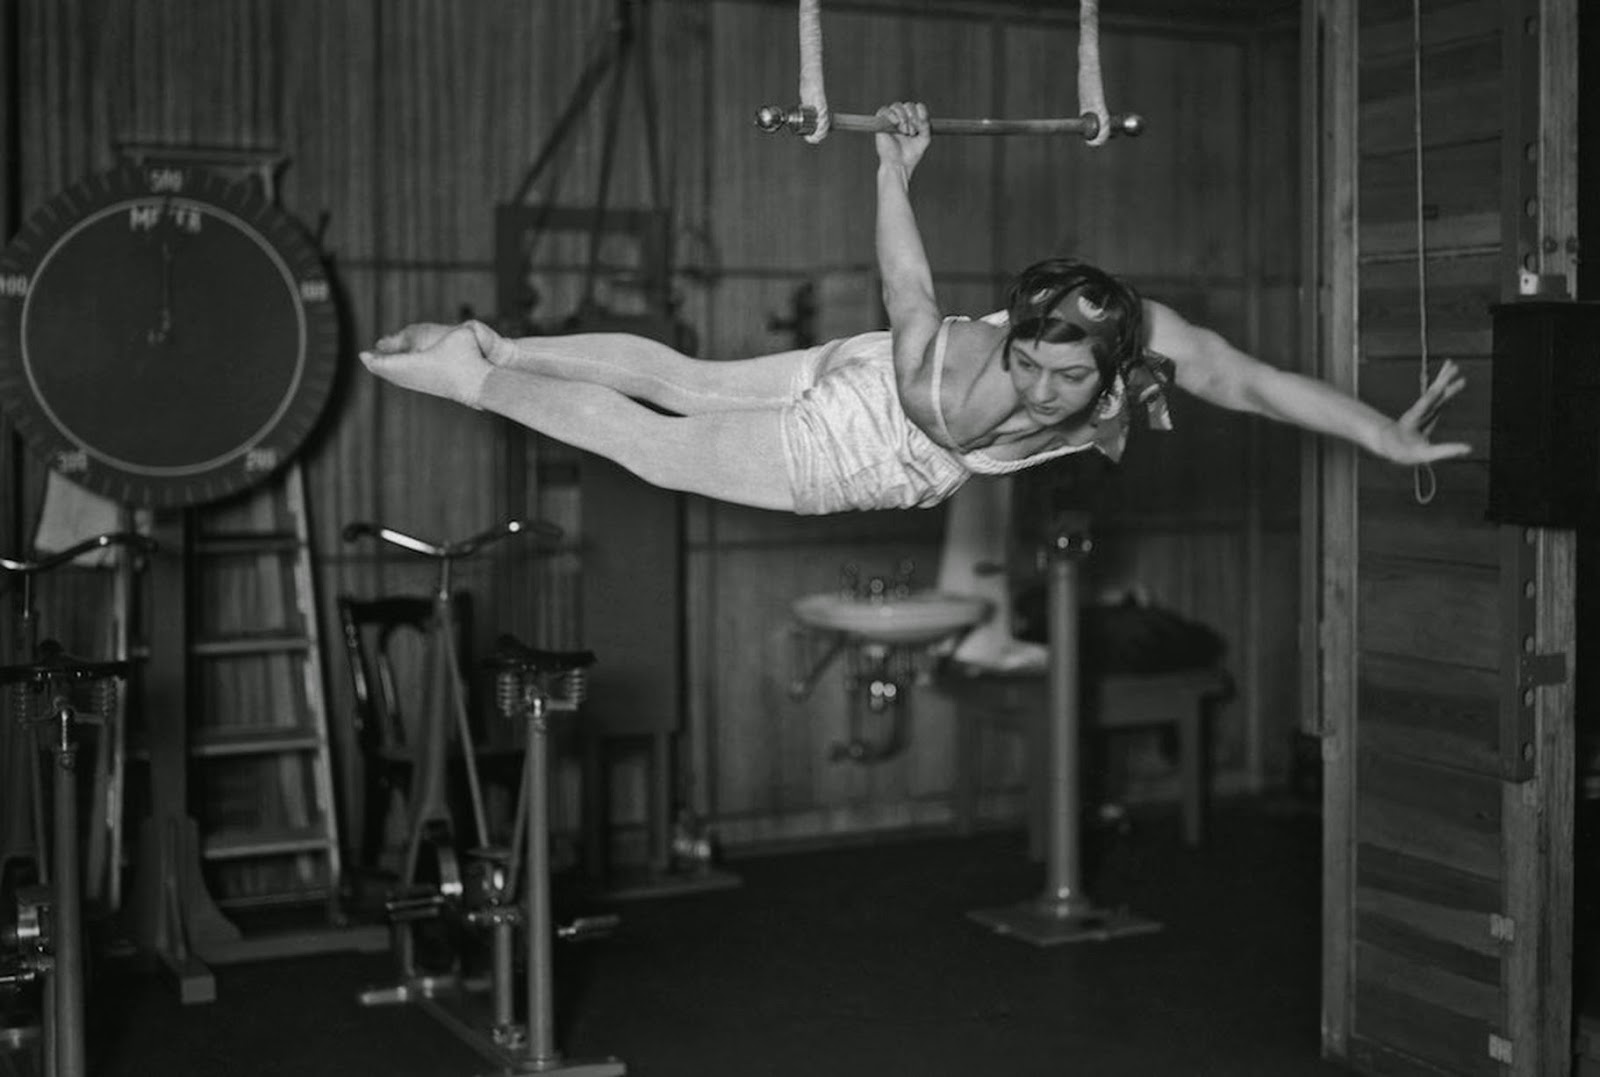 Woman using an apparatus in the gymnasium of the ocean liner S.S. Bremen. A cycling machine in the behind.